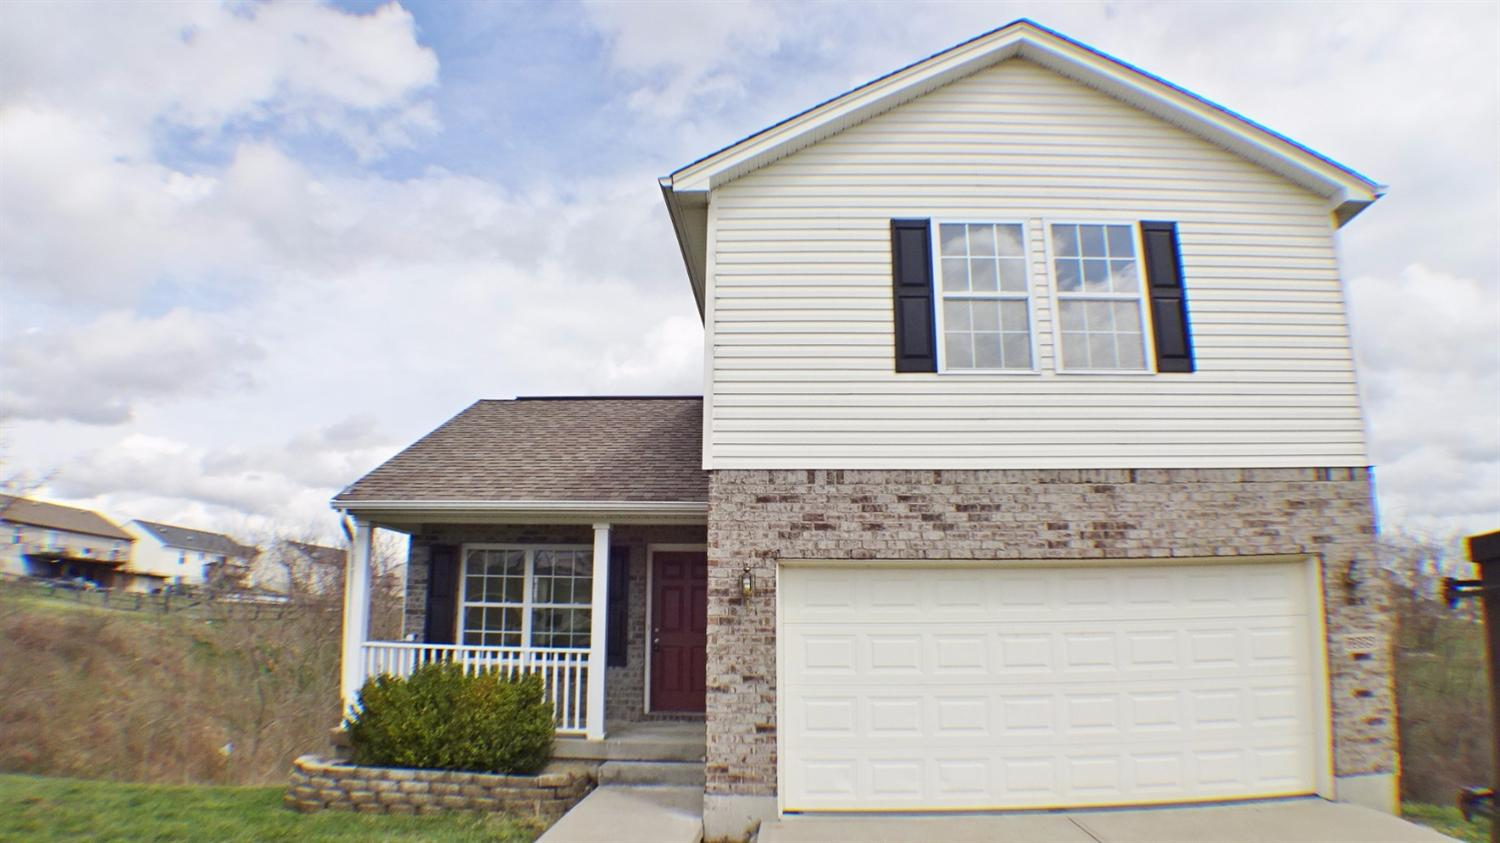 Photo 1 for 1228 Bull Run Independence, KY 41051